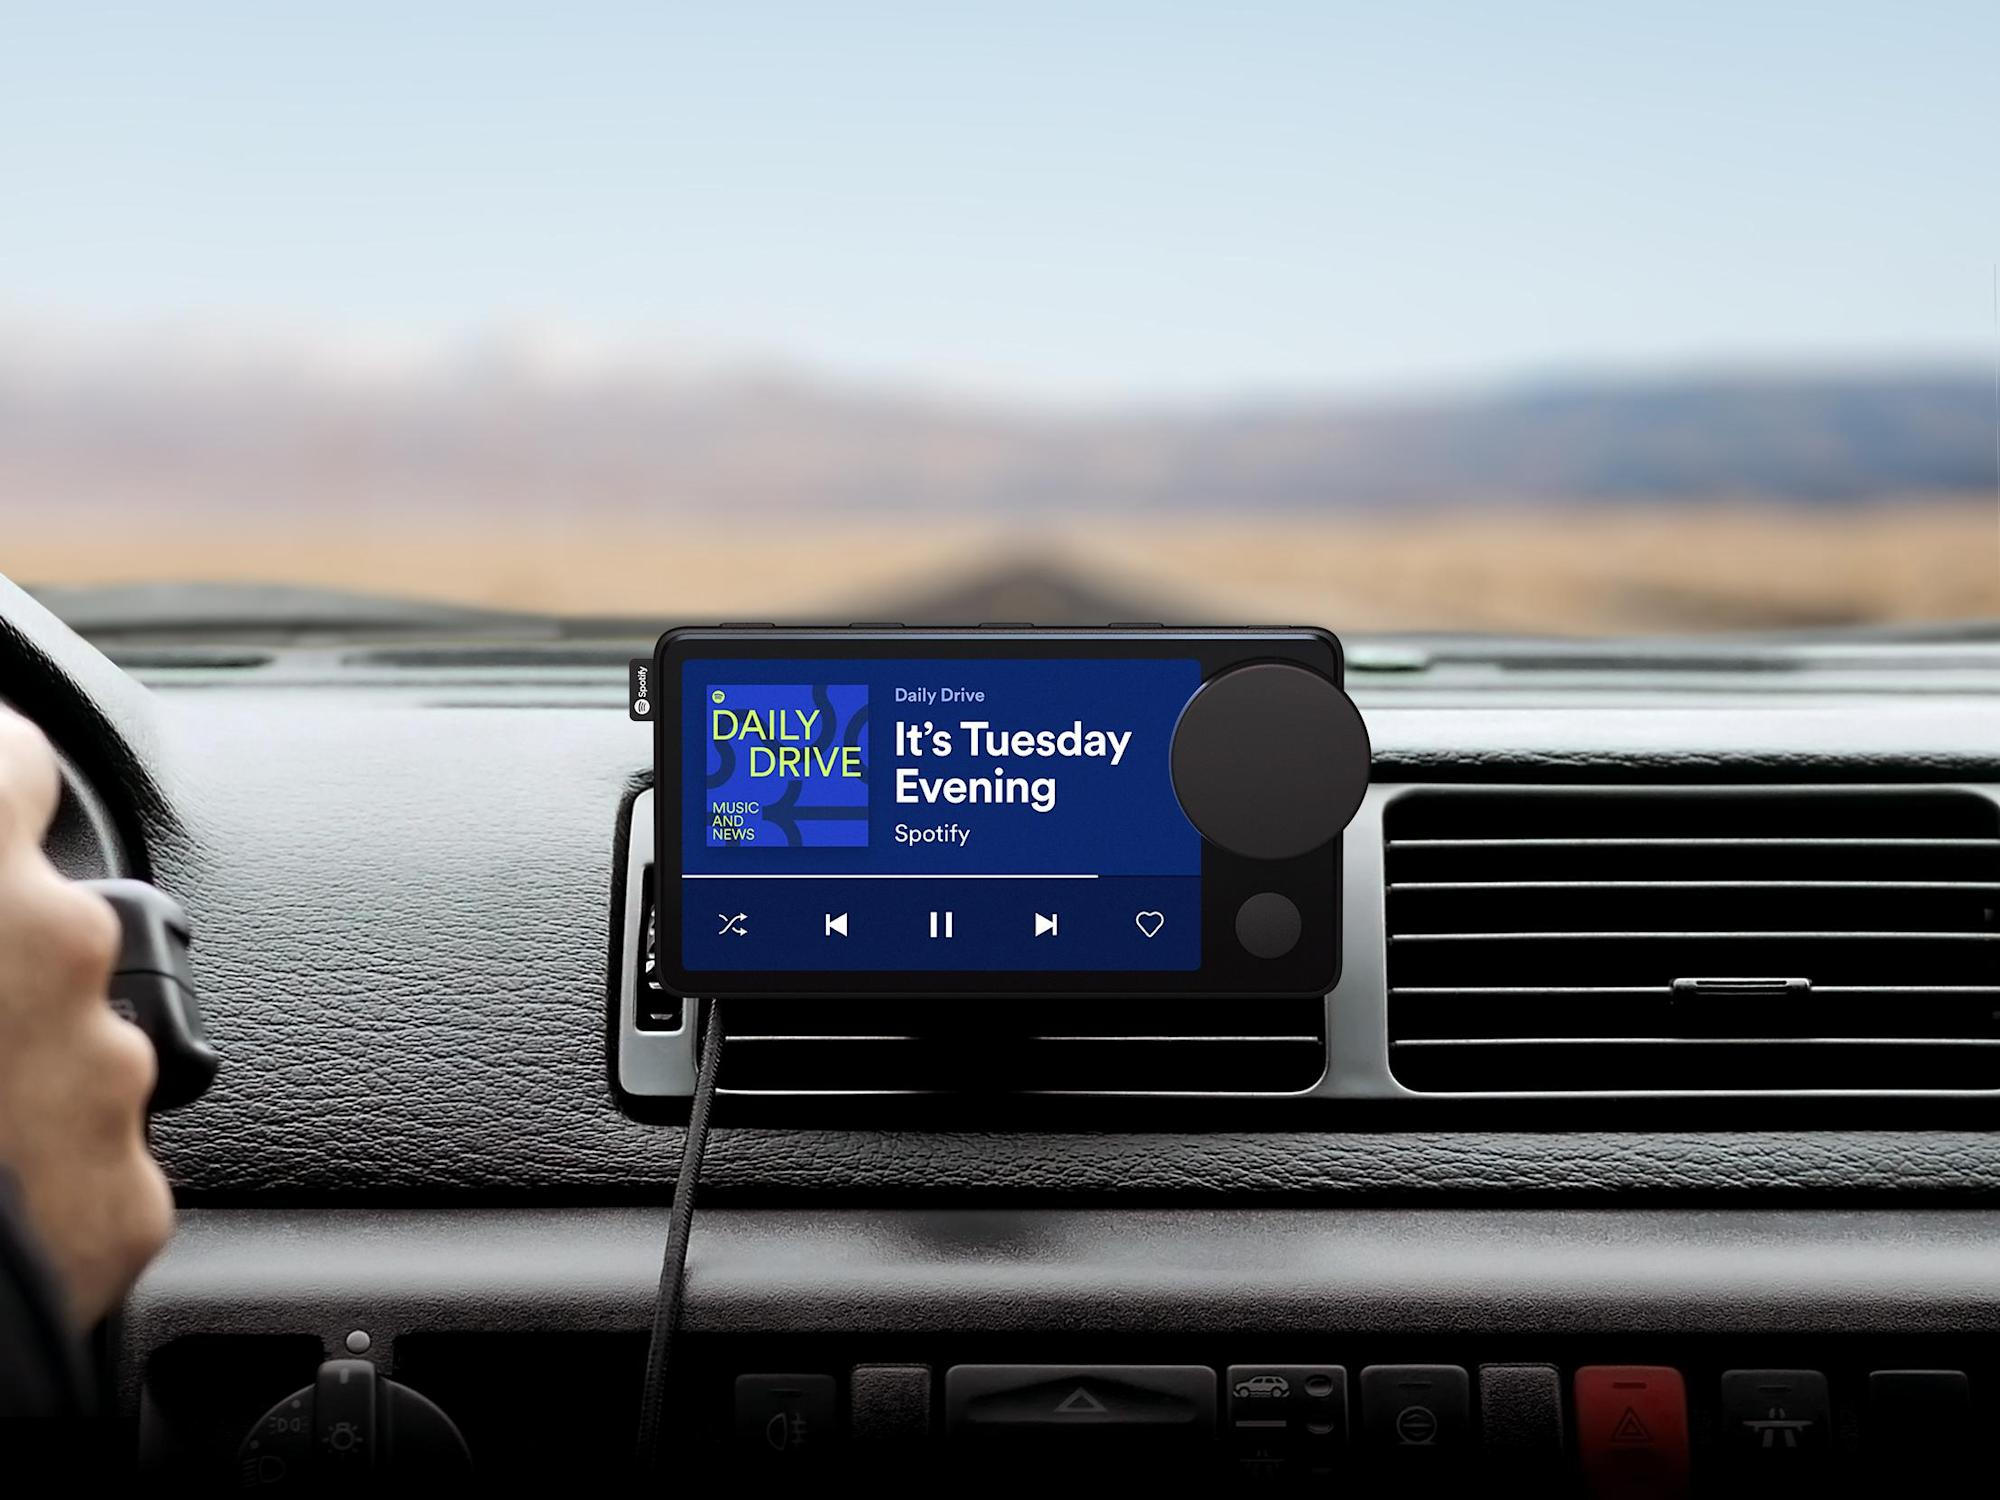 Spotify is an in-car entertainment system